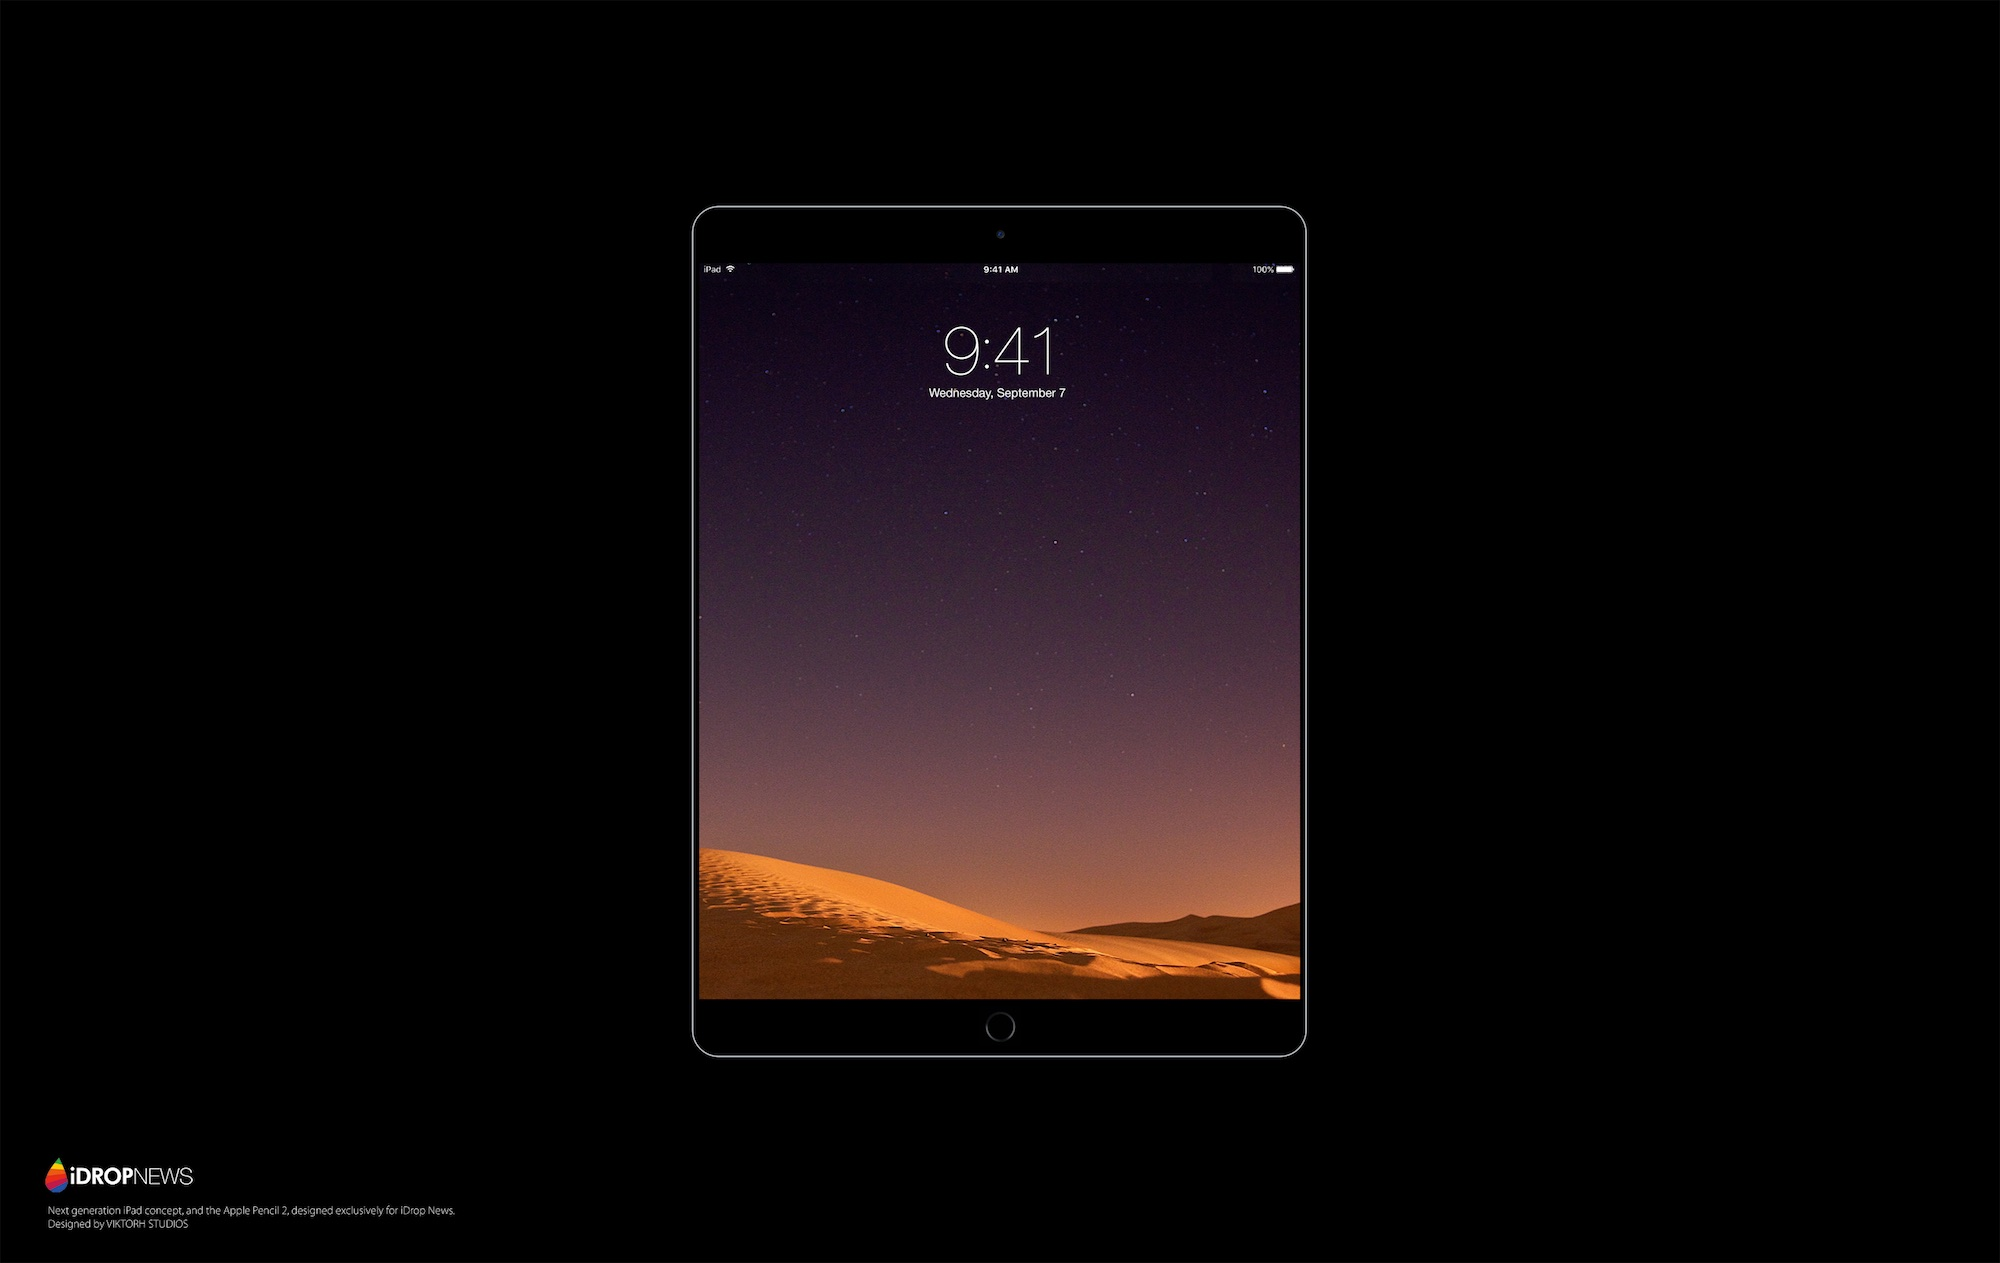 iPad Pro 2 concept in black